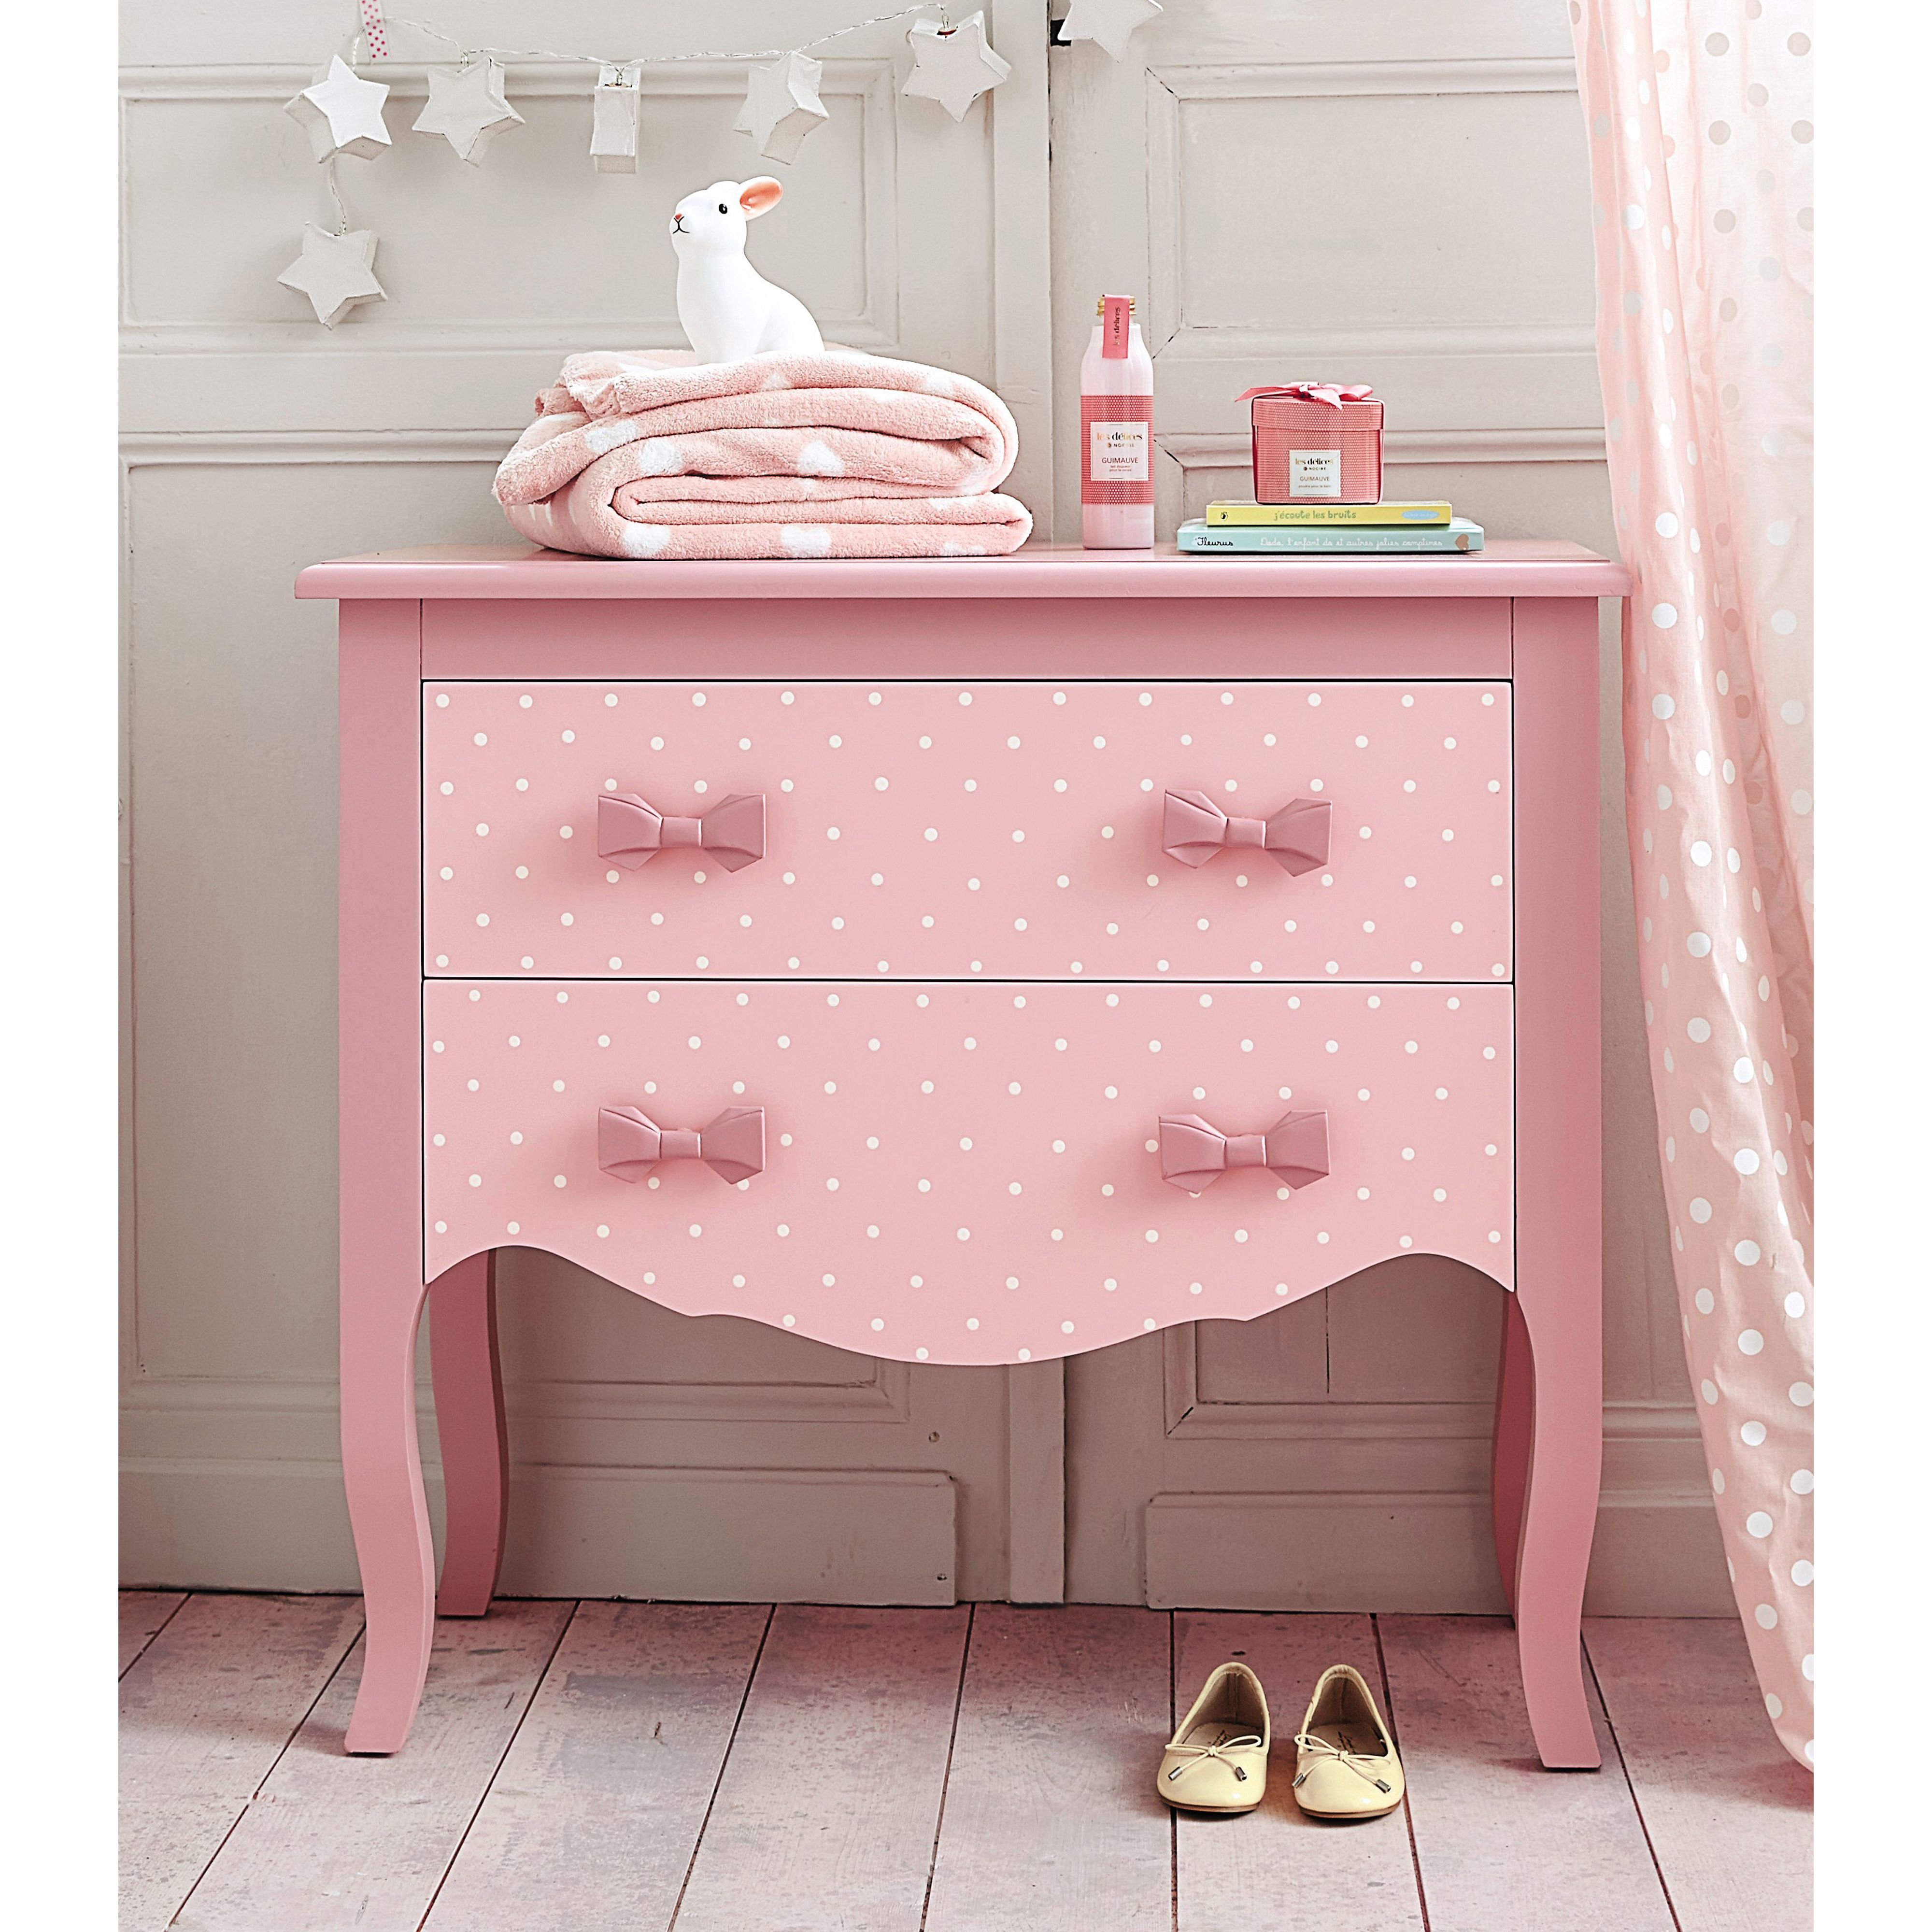 Commode enfant coquette maisons du monde mdm junior pinterest roses - Commodes maison du monde ...